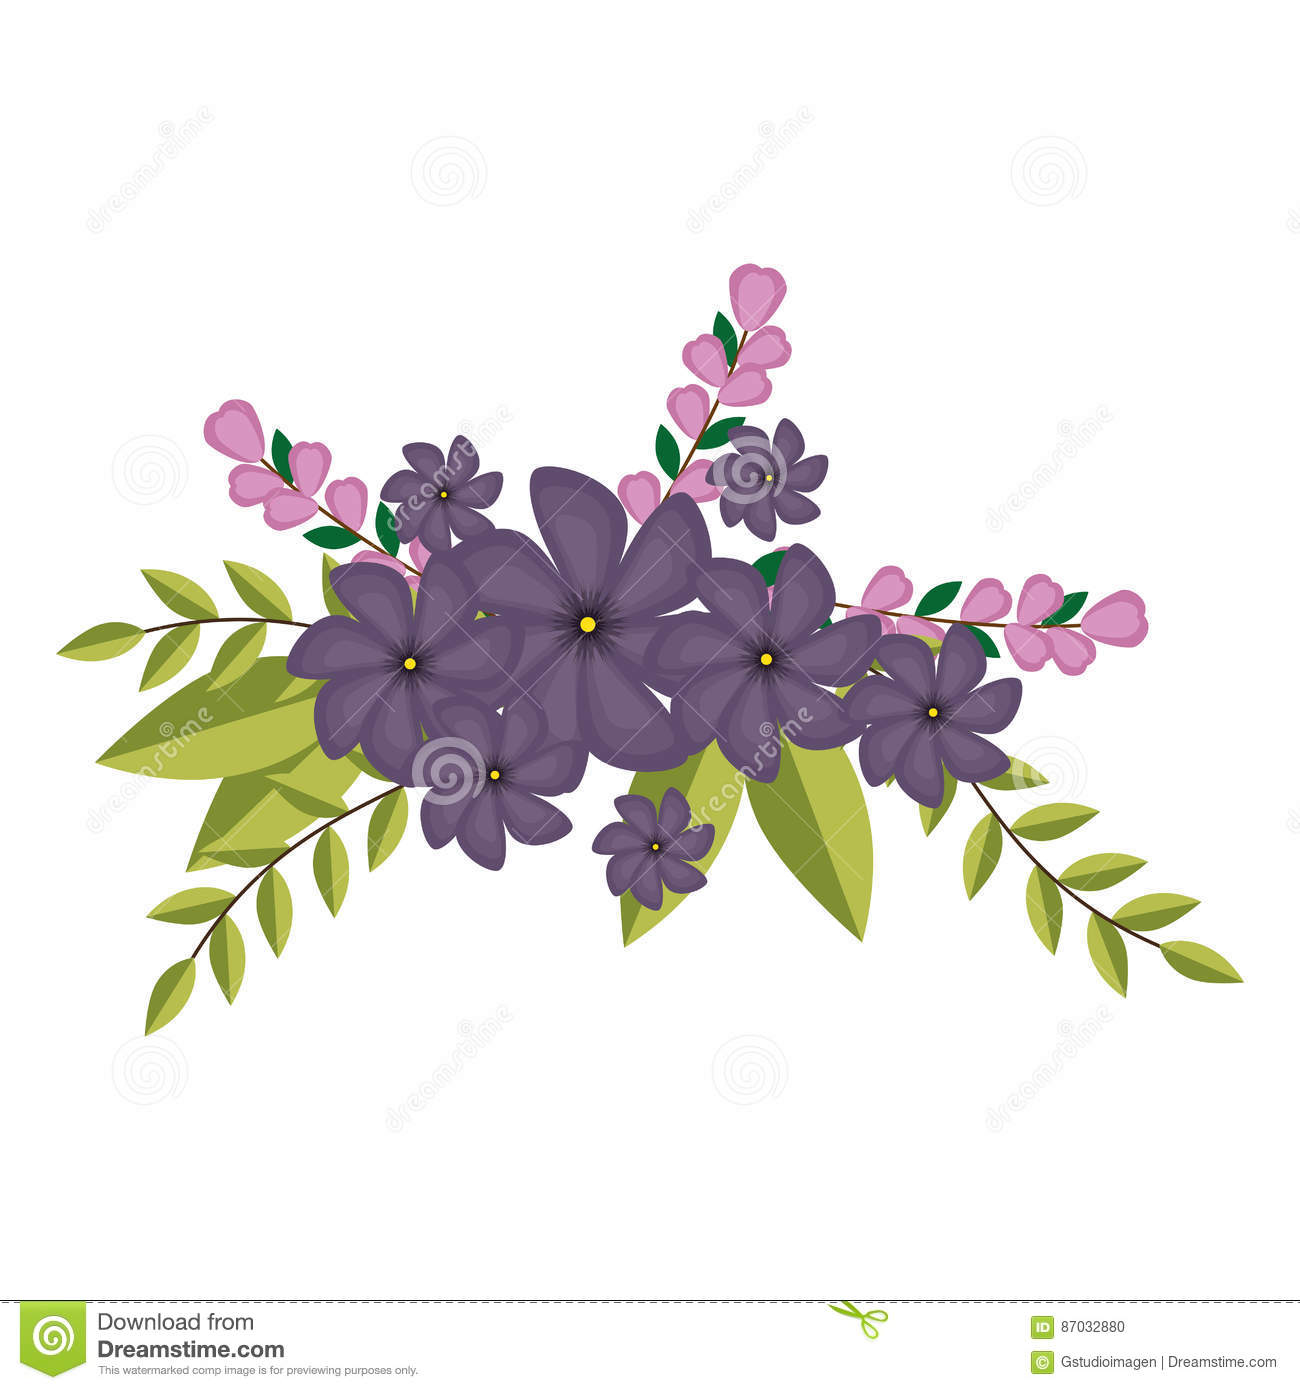 Violets Flowers Crown Floral Design With Leaves Stock Vector